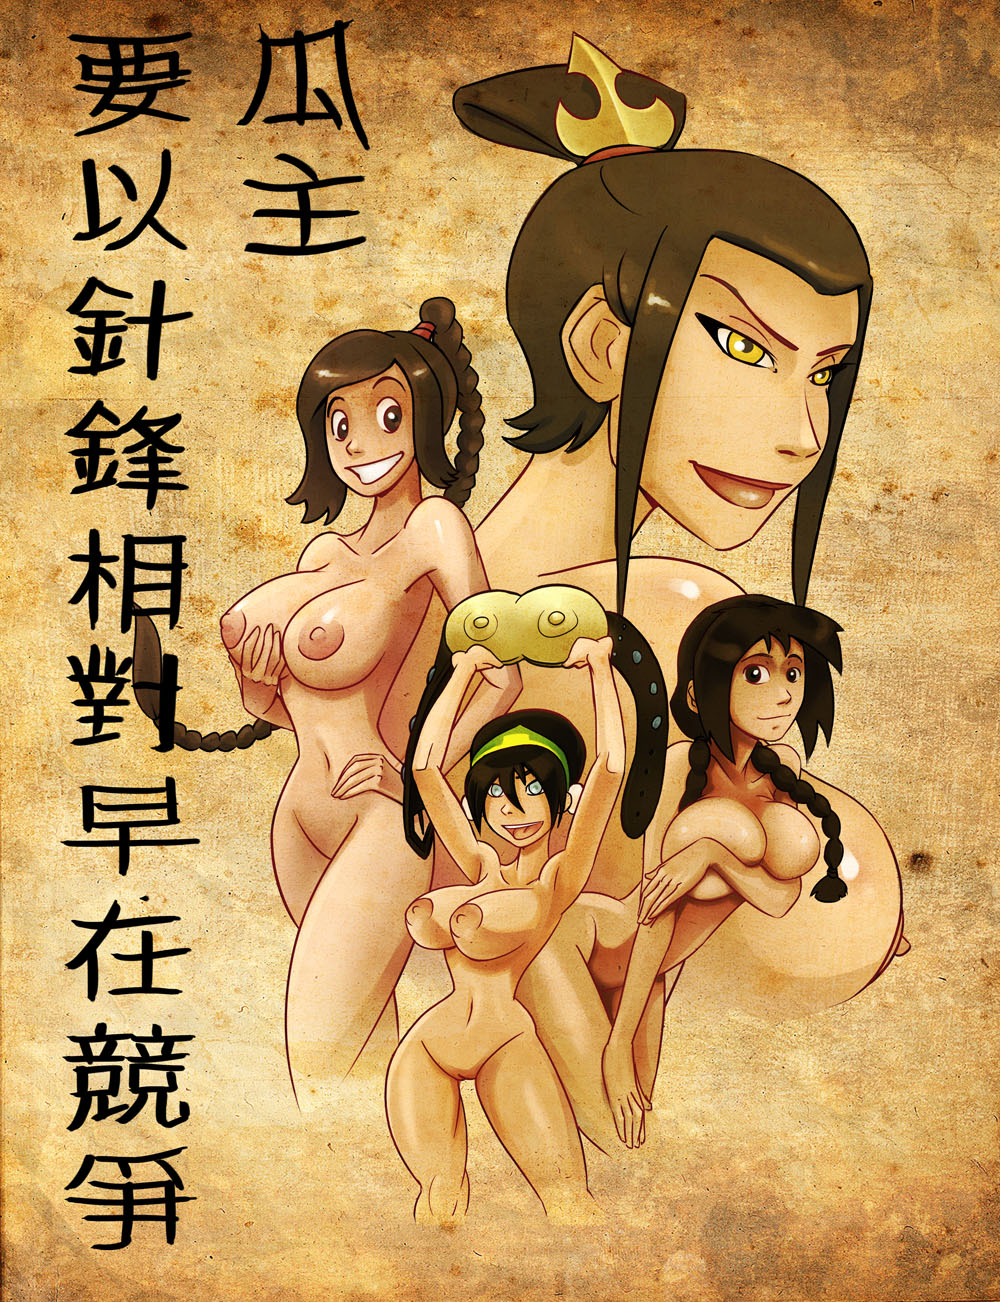 the last toph avatar airbender naked Corruption of champions 2 eggs